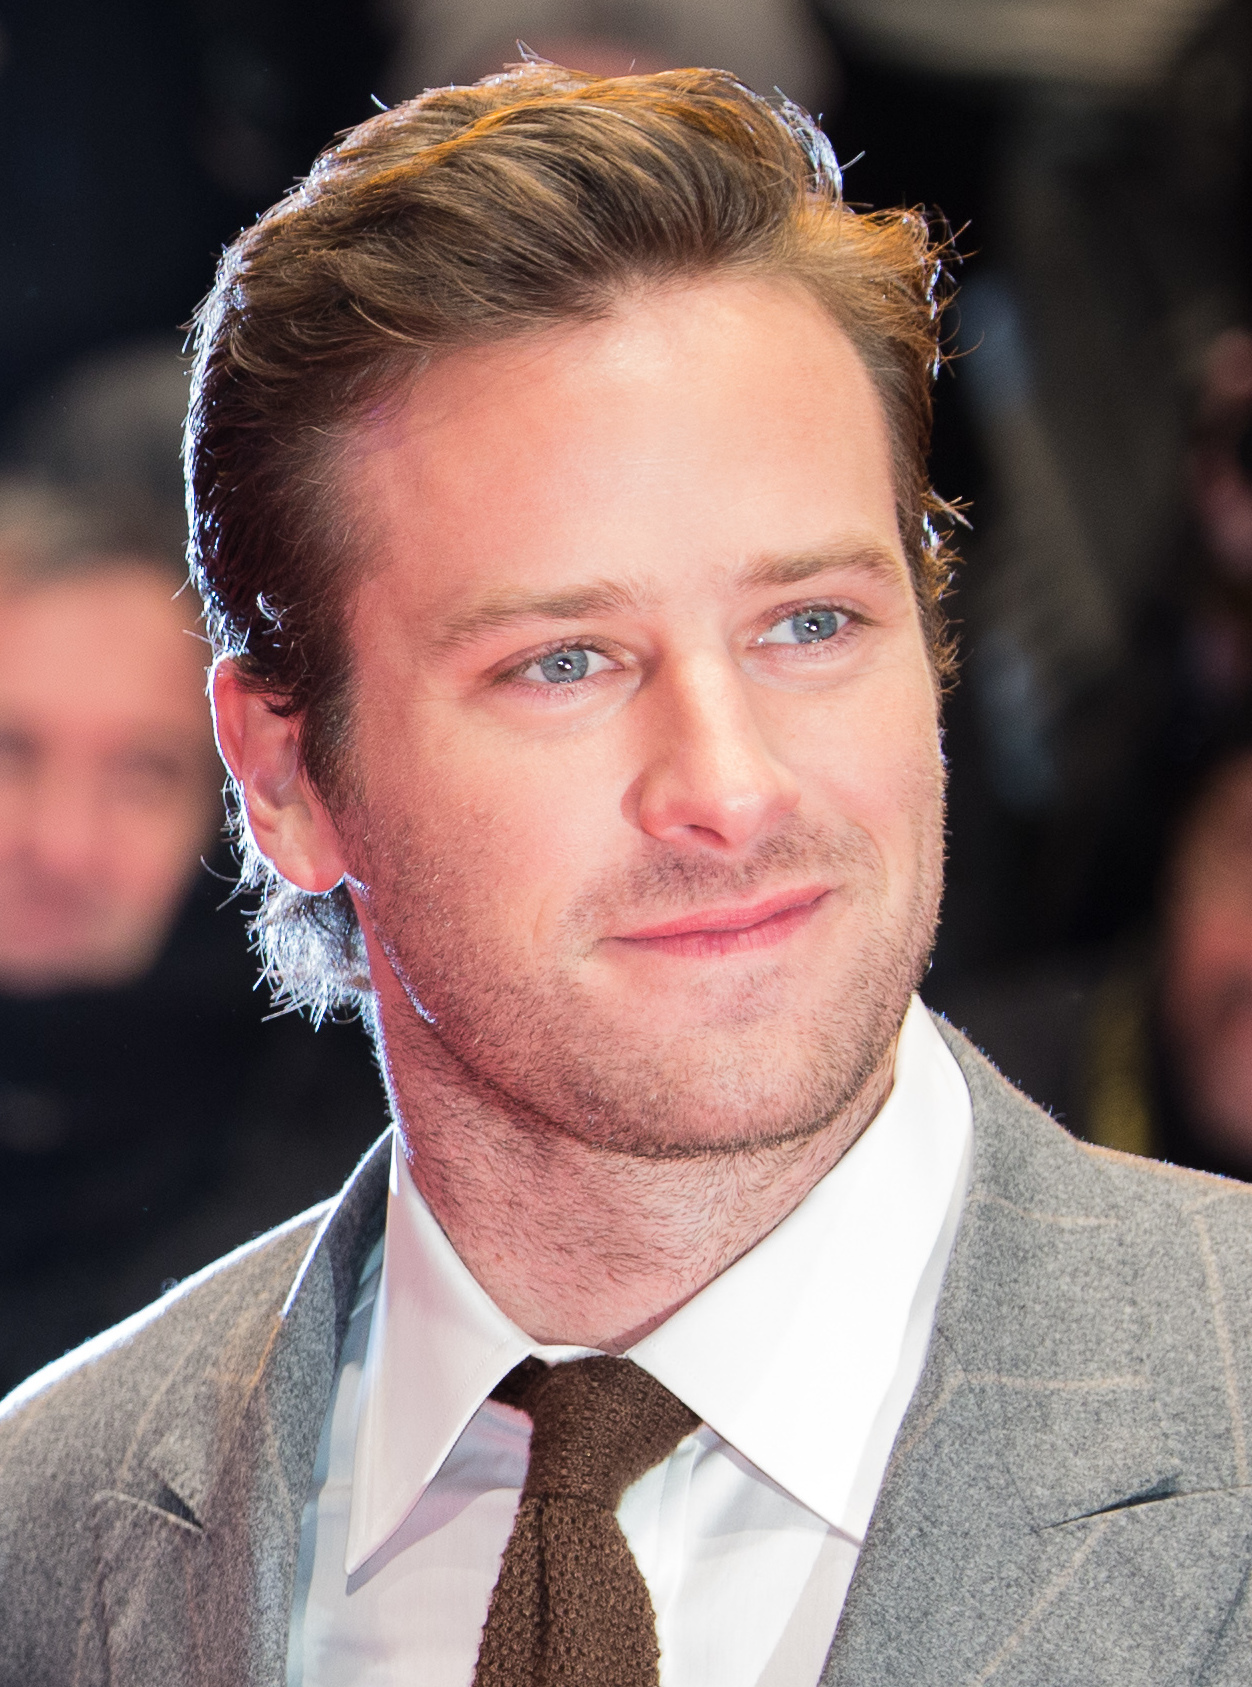 The 32-year old son of father Michael Armand Hammer and mother Dru Ann Mobley Armie Hammer in 2018 photo. Armie Hammer earned a  million dollar salary - leaving the net worth at 12 million in 2018